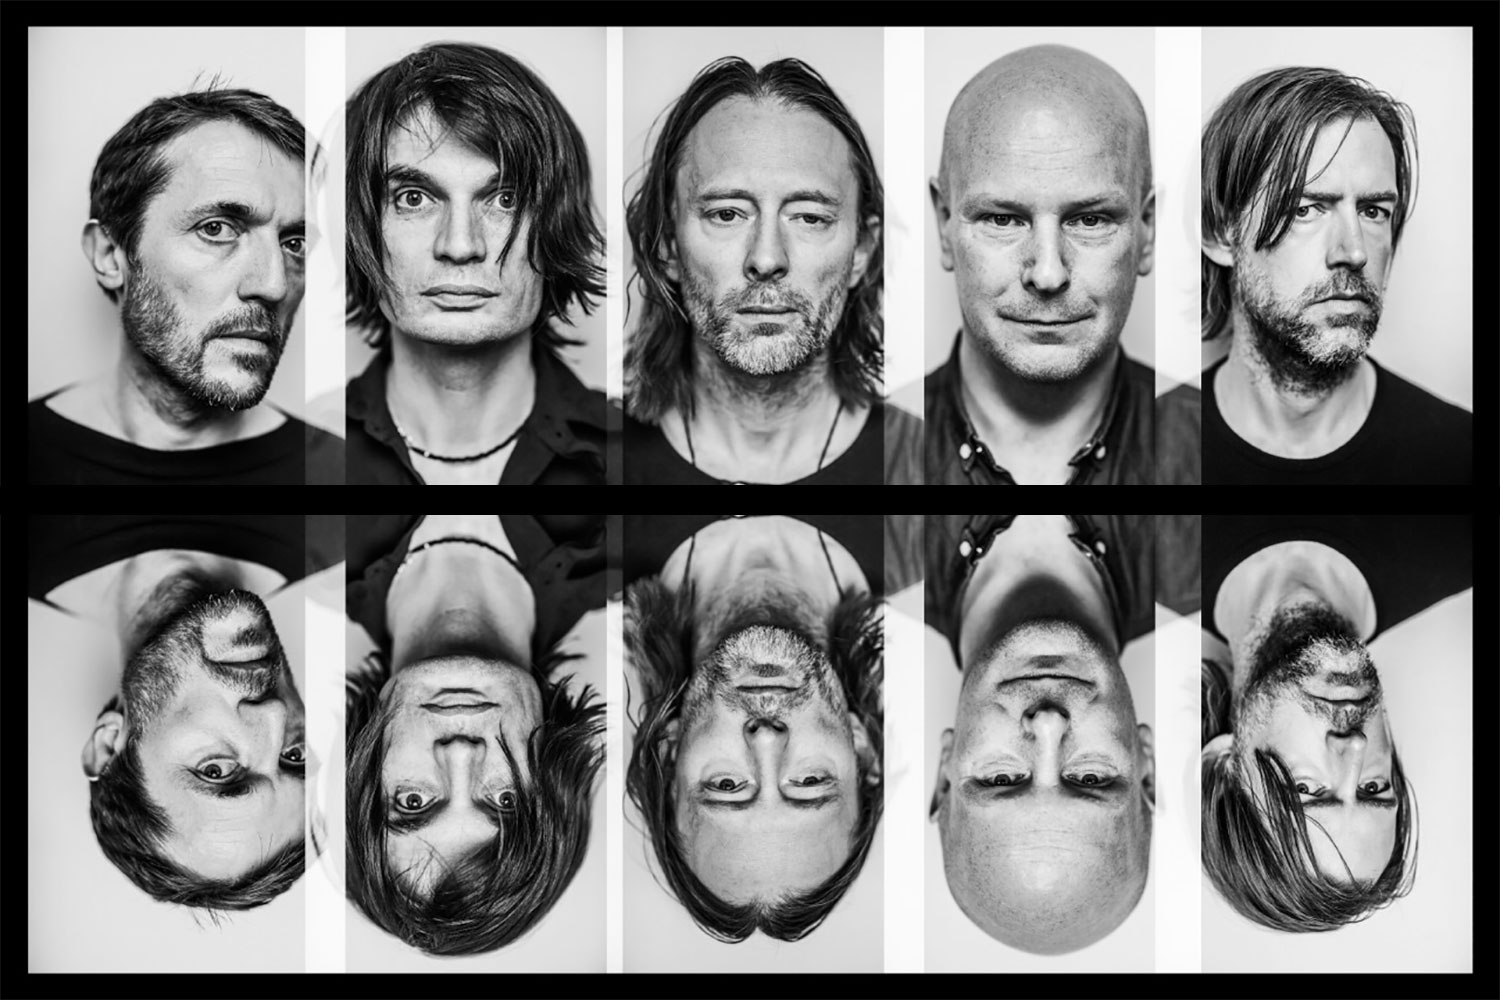 RADIOHEAD: THEIR ENTIRE DISCOGRAPHY IS NOW ON SPOTIFY!